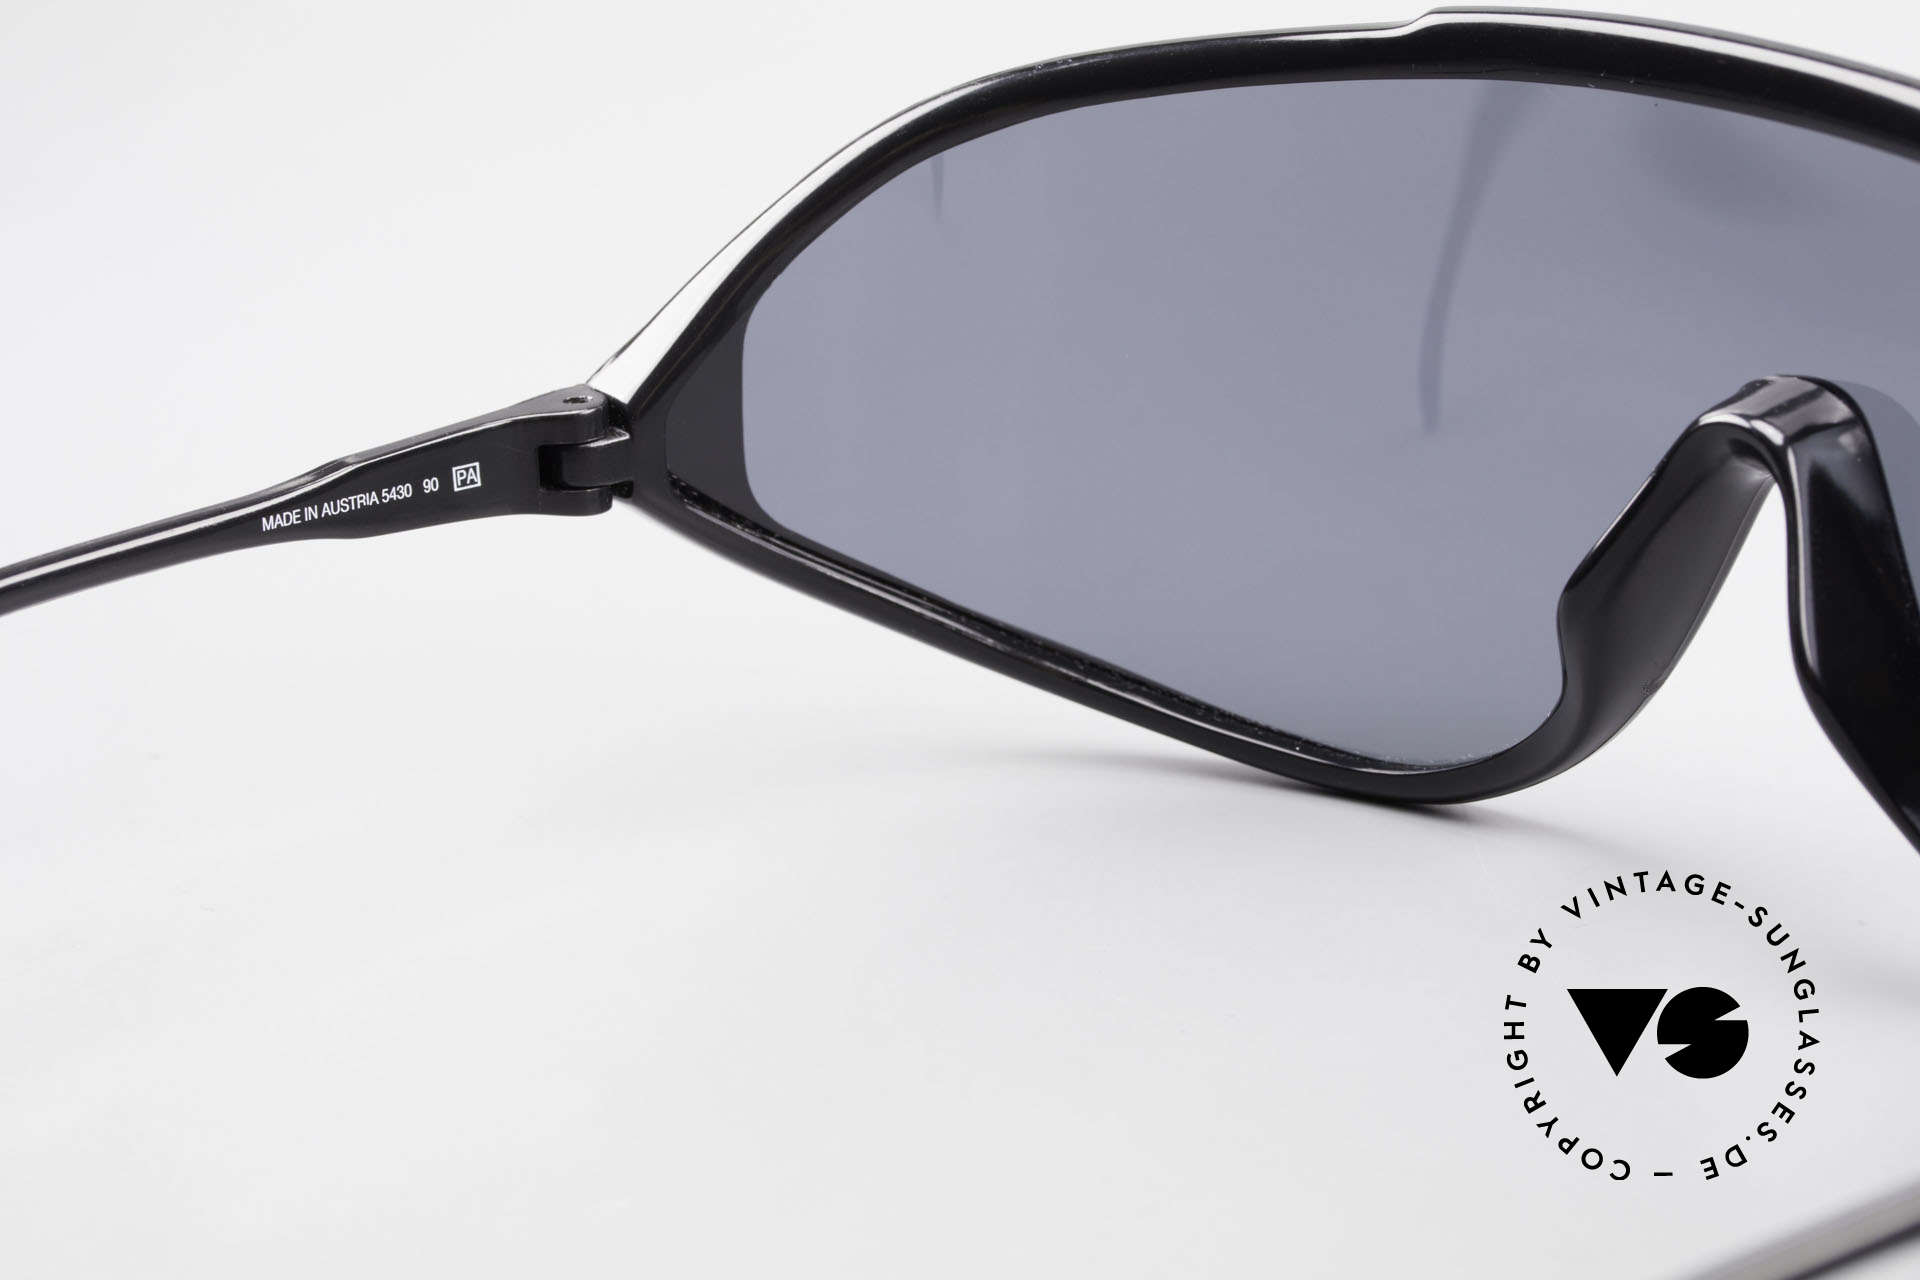 Carrera 5430 90's Sports Shades Polarized, NO RETRO sunglasses, but an authentic OLD ORIGINAL, Made for Men